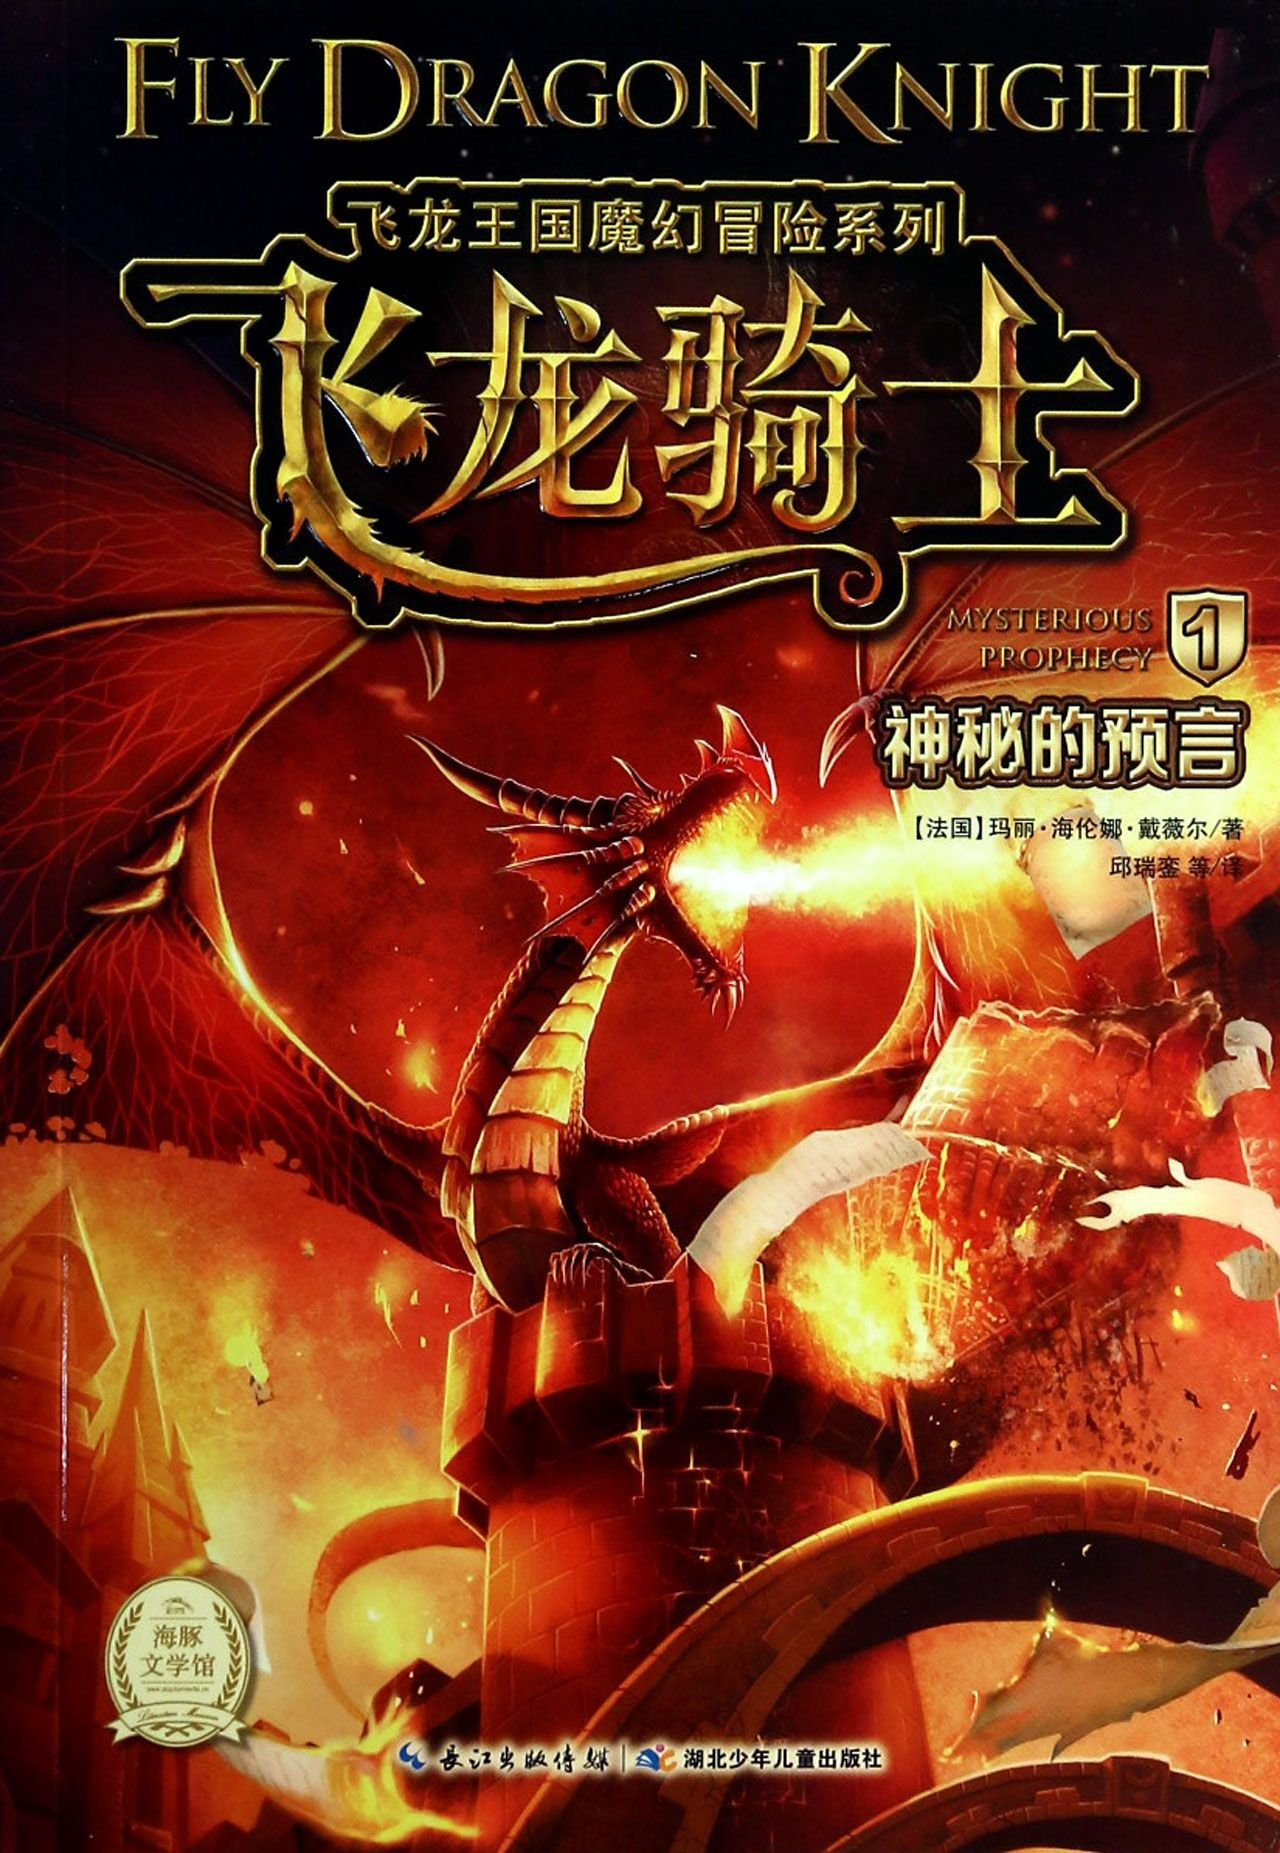 Download The Chronicles of Narnia adventure series Dragon Dragon Knight (1): the mysterious prophecy(Chinese Edition) ebook